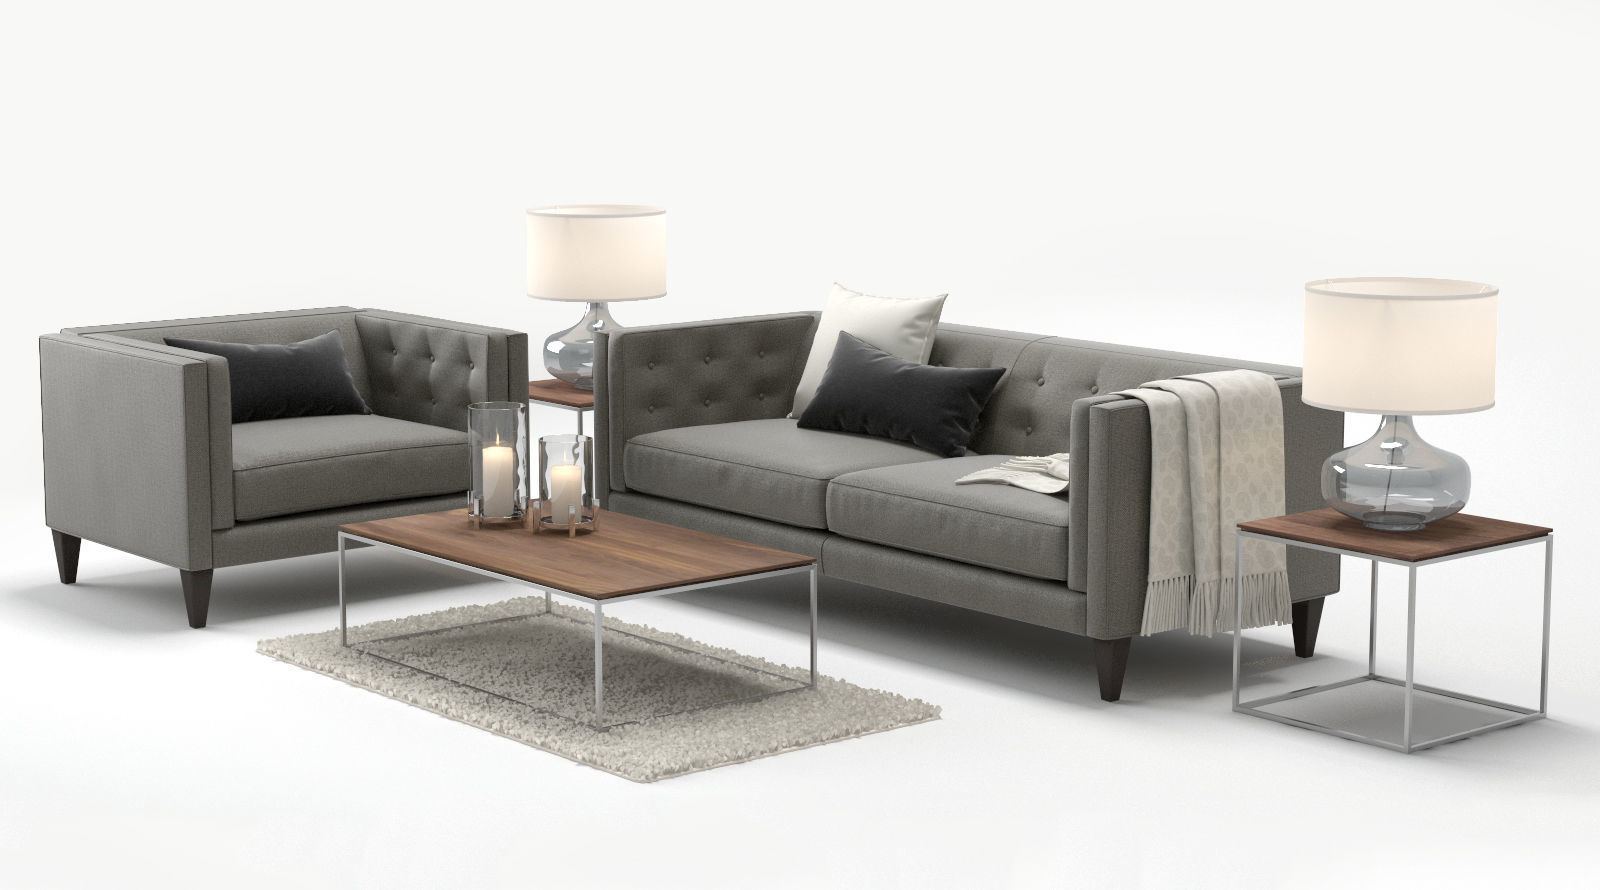 3D Crate And Barrel Aidan Sofa Chair | Cgtrader With Regard To Aidan Ii Sofa Chairs (View 4 of 25)